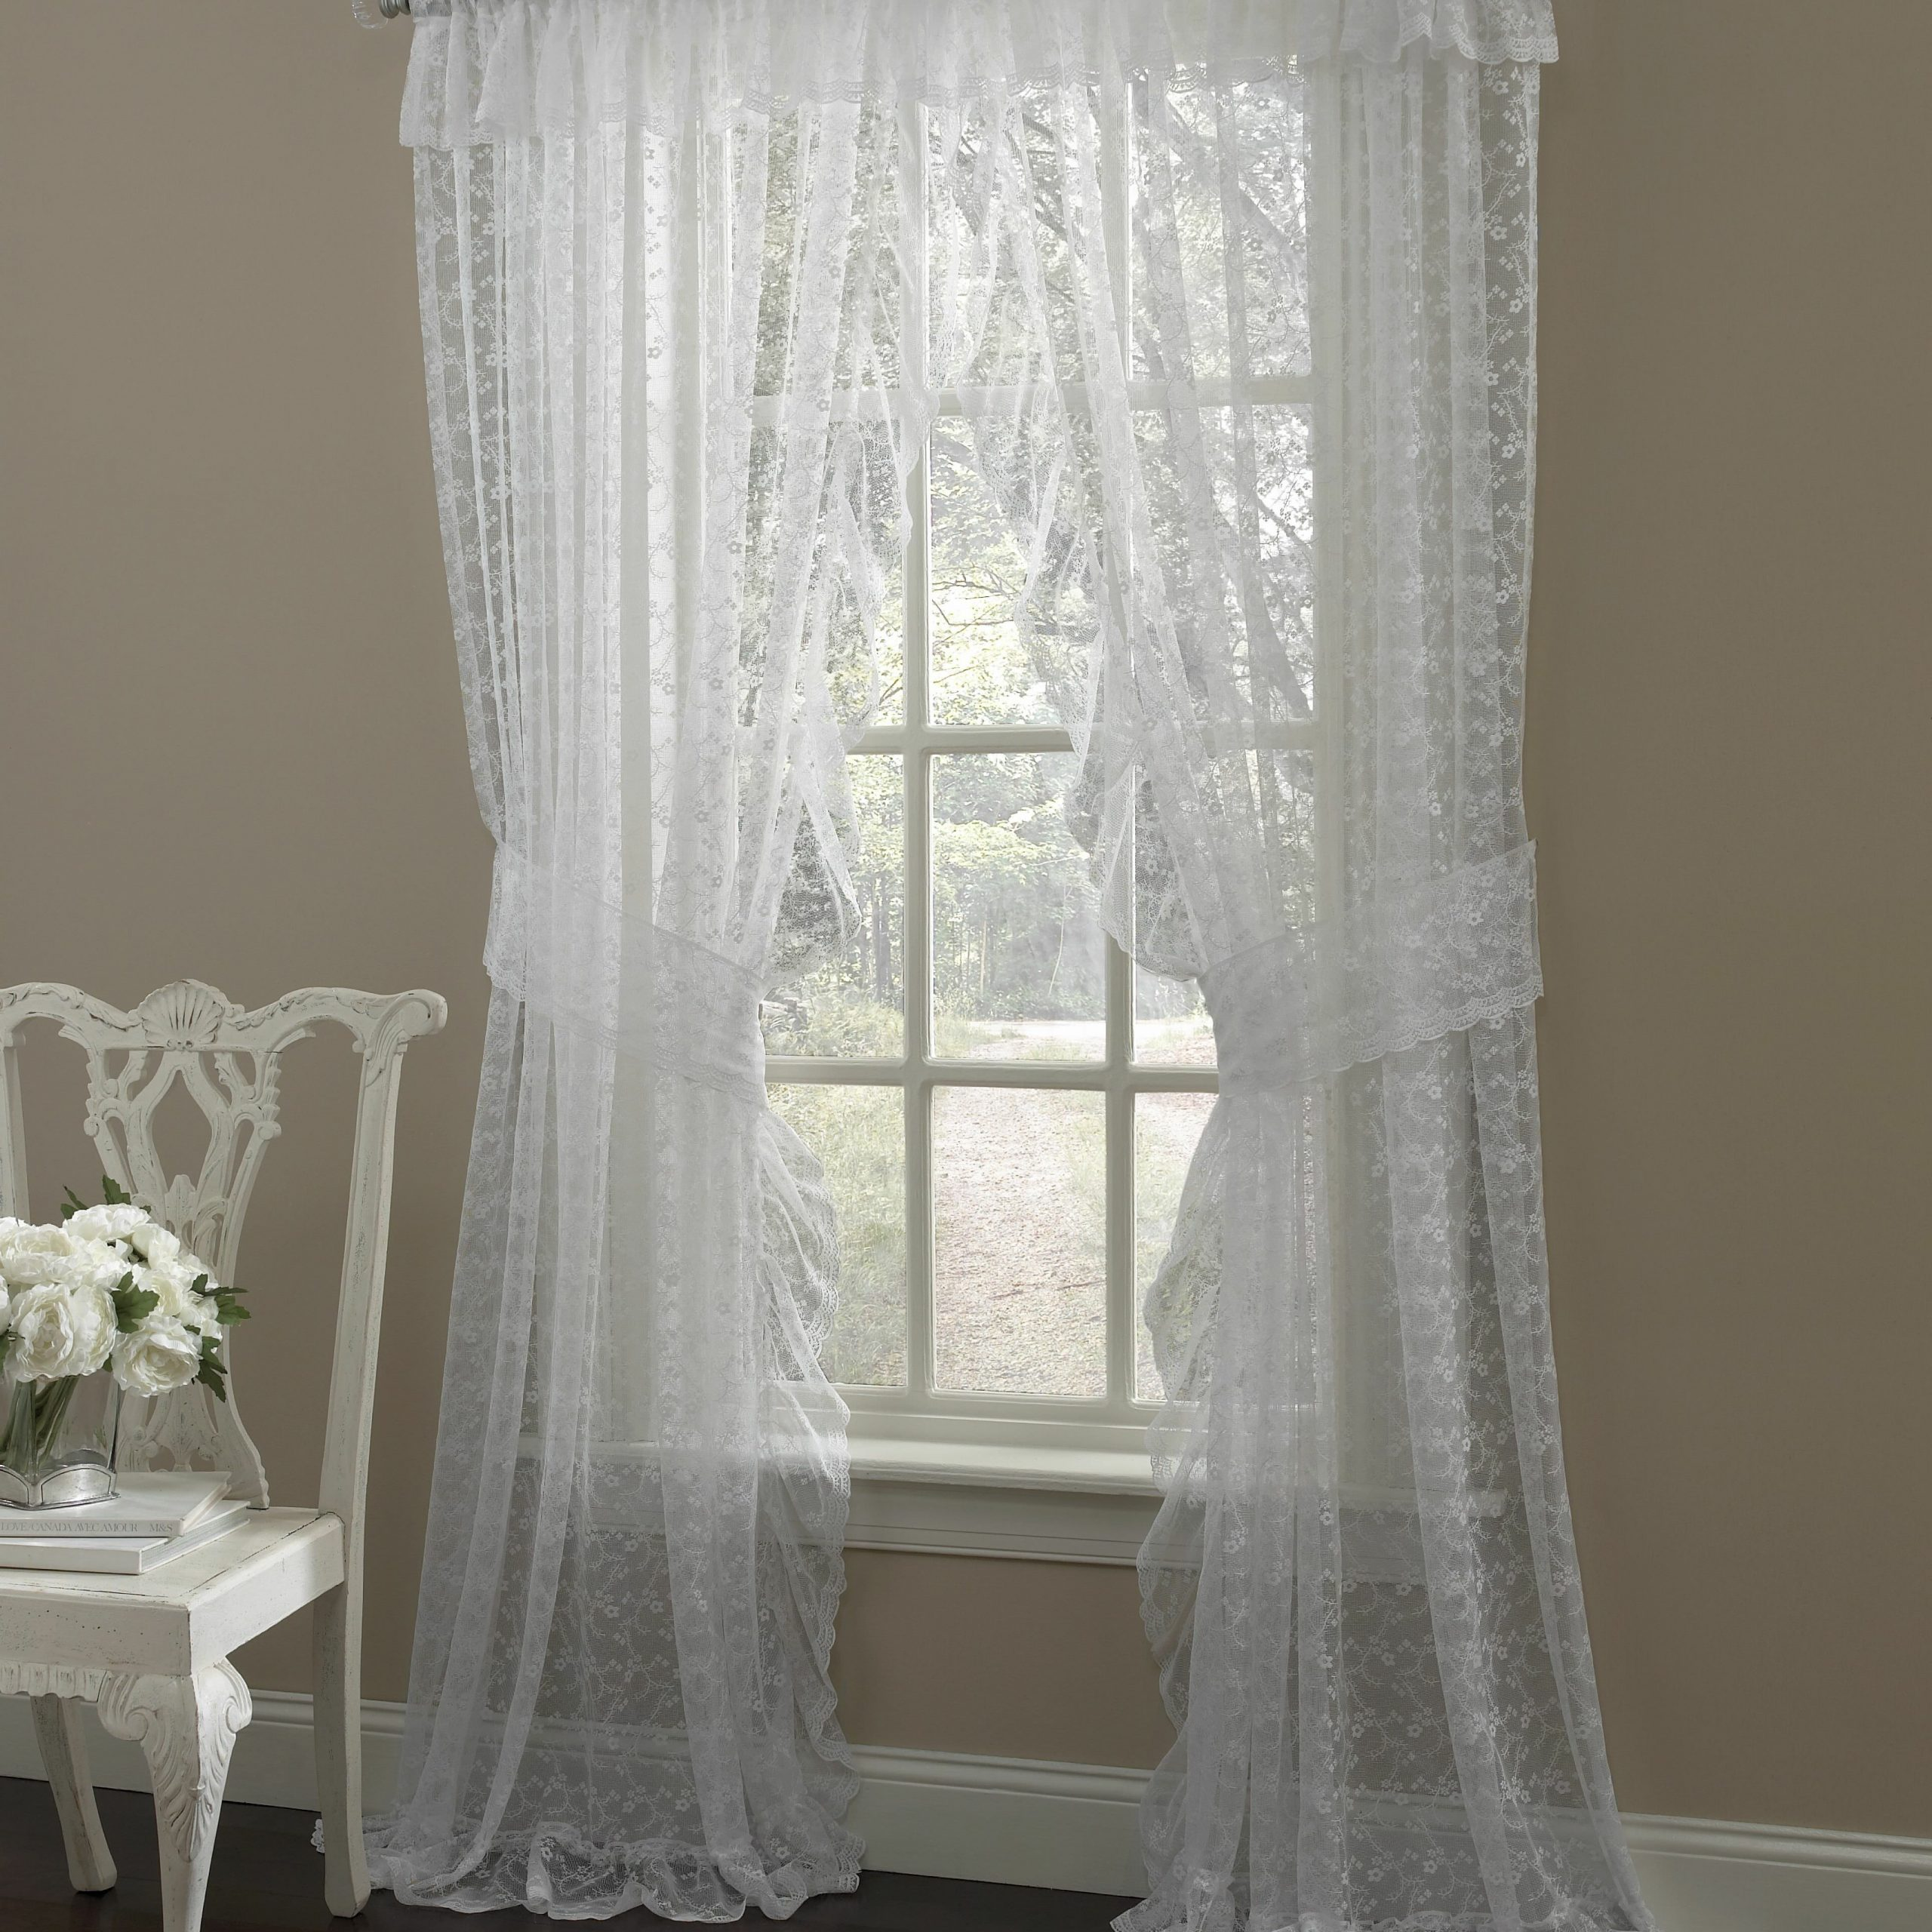 Most Current Elegant Comfort Window Sheer Curtain Panel Pairs With Regard To Maximo Traditional Elegance Floral Semi Sheer Curtain Panels (Gallery 8 of 20)